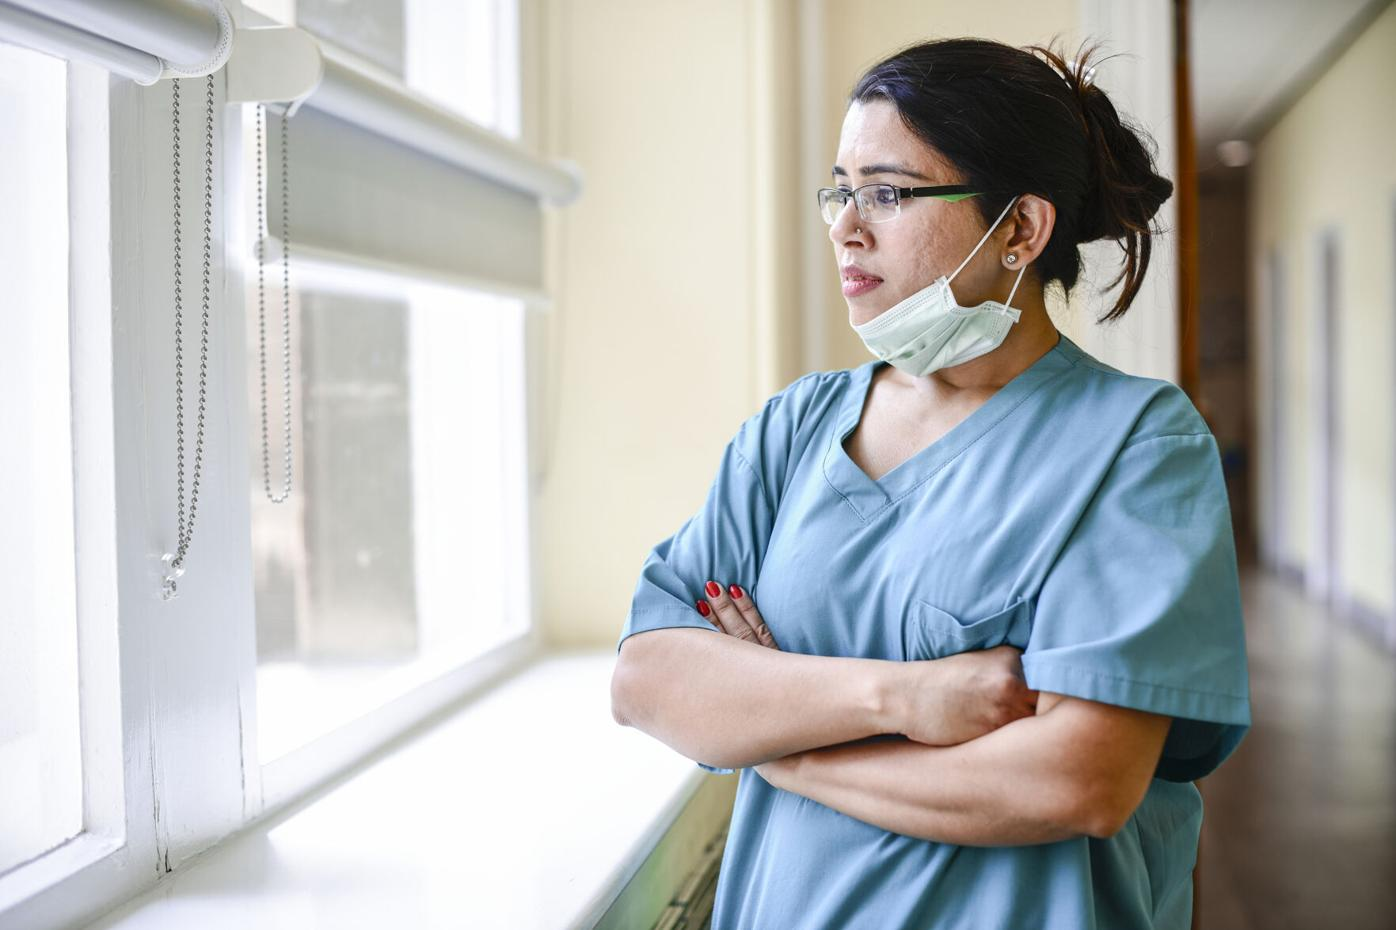 Female nurse staring out the window